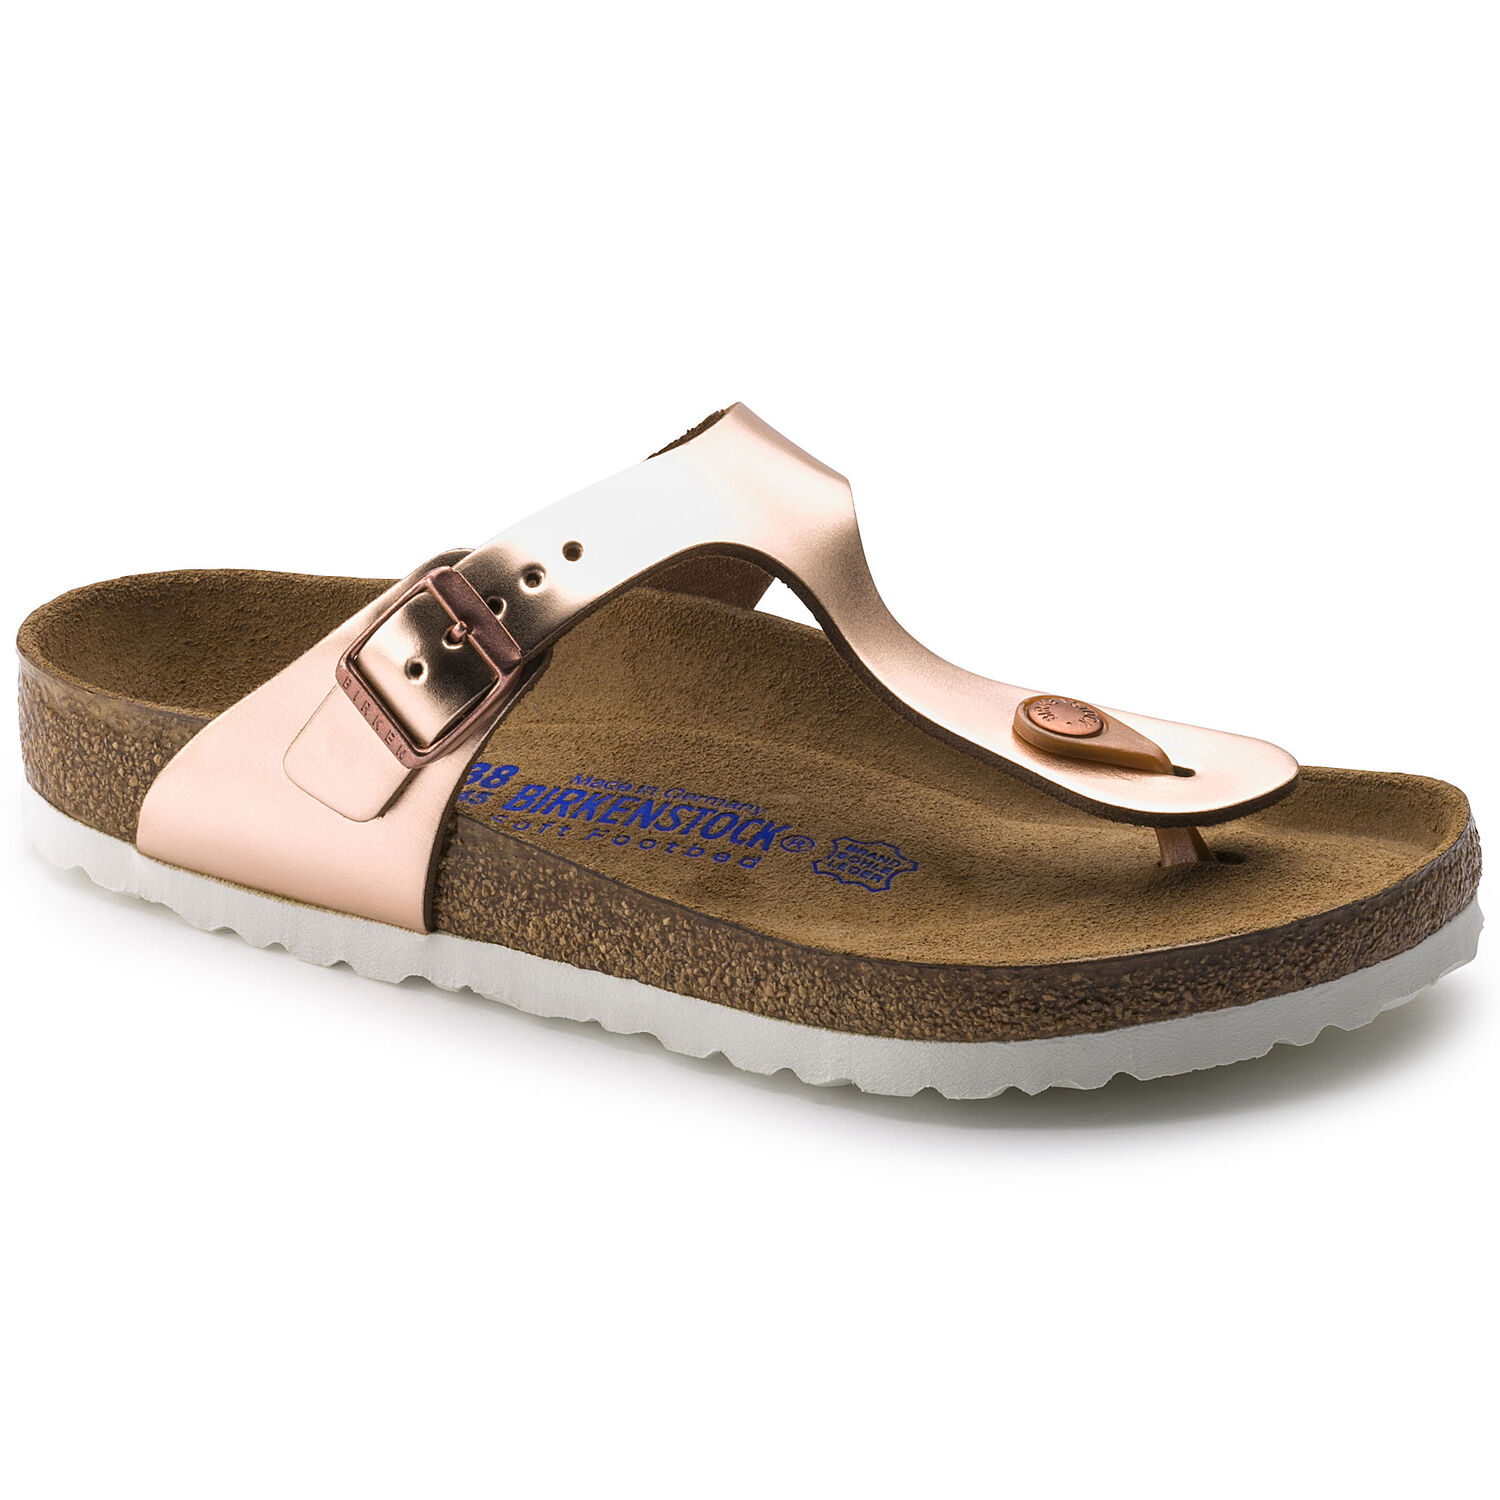 bc1c3fcf8088 Gizeh Natural Leather Soft Footbed Metallic Copper